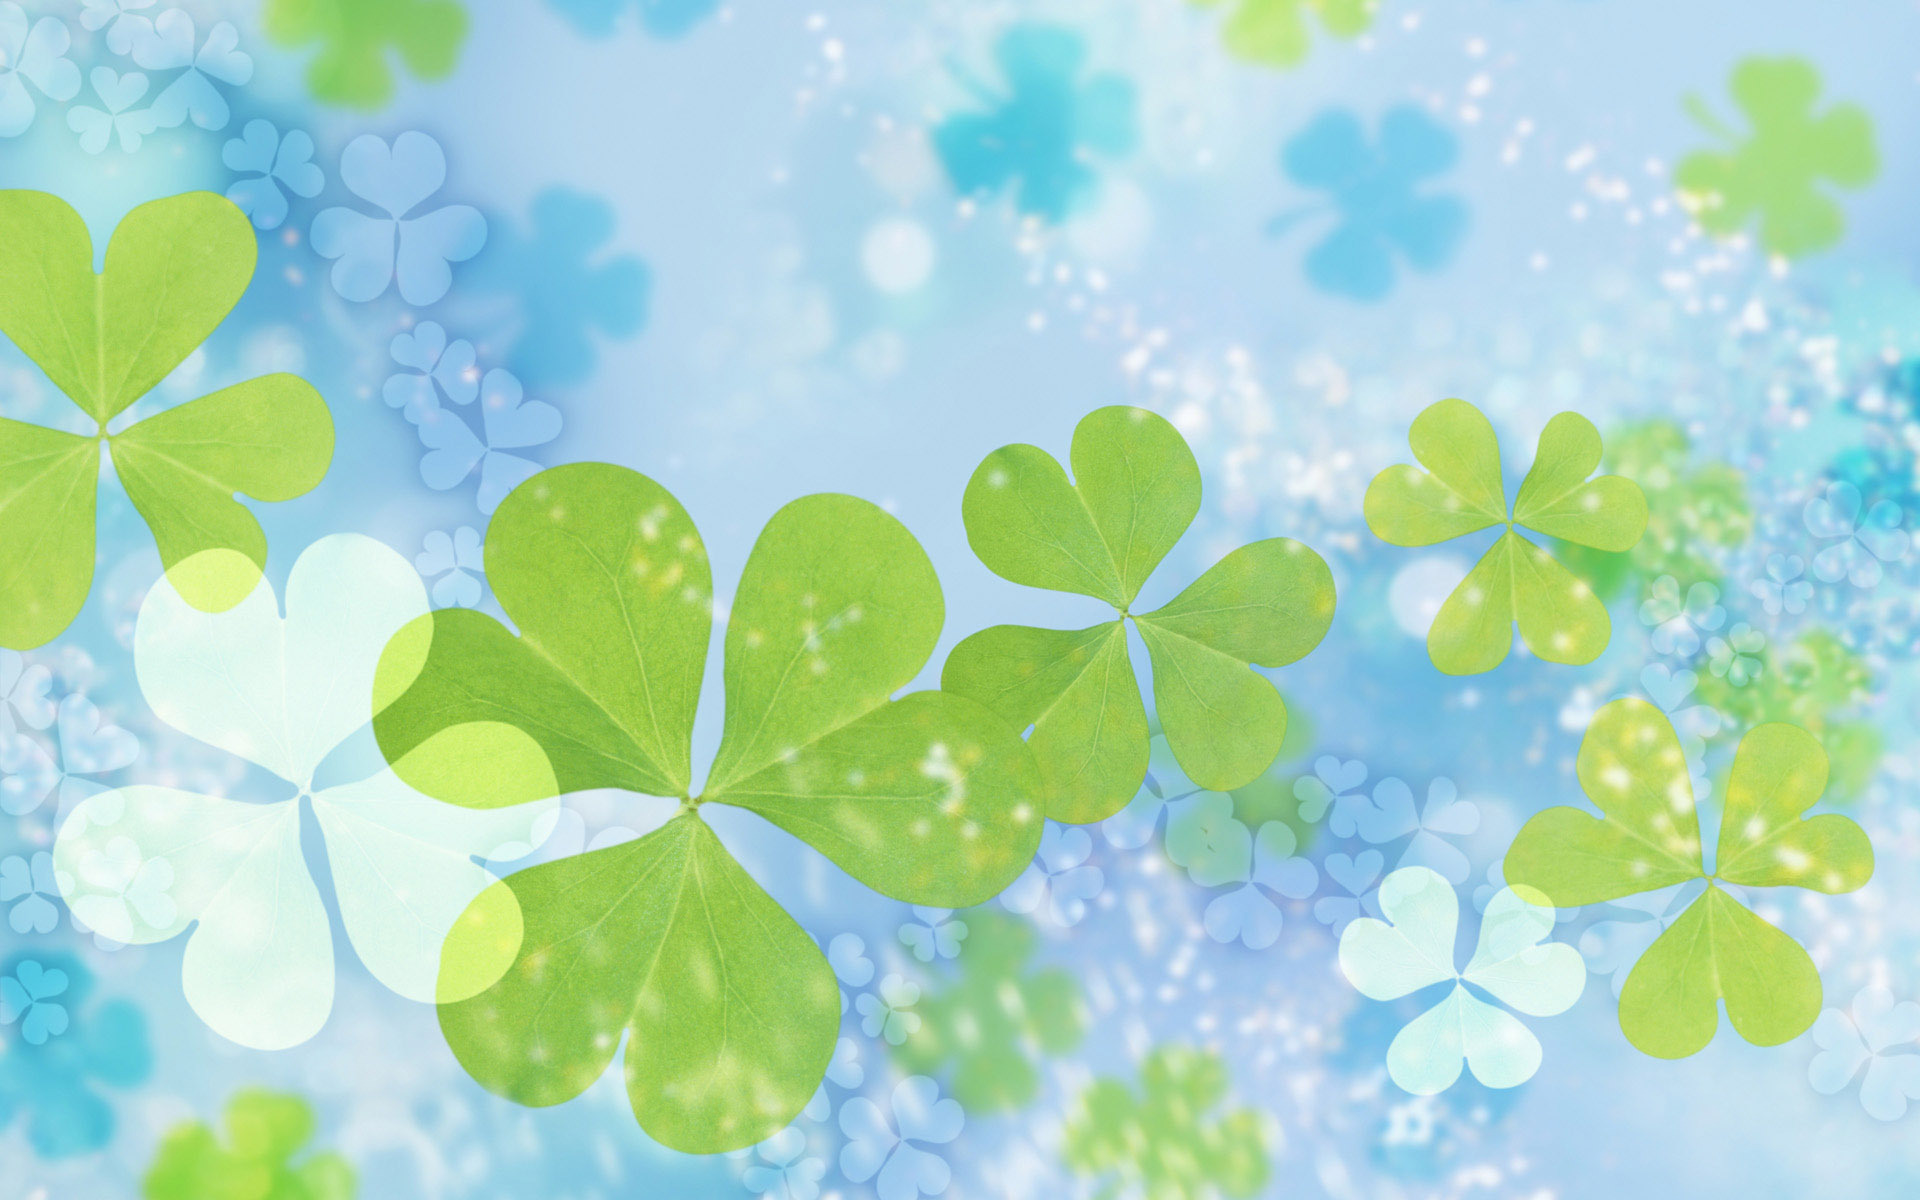 Saint Patrick's Day Wallpapers - Wallpaper, High Definition, High ...